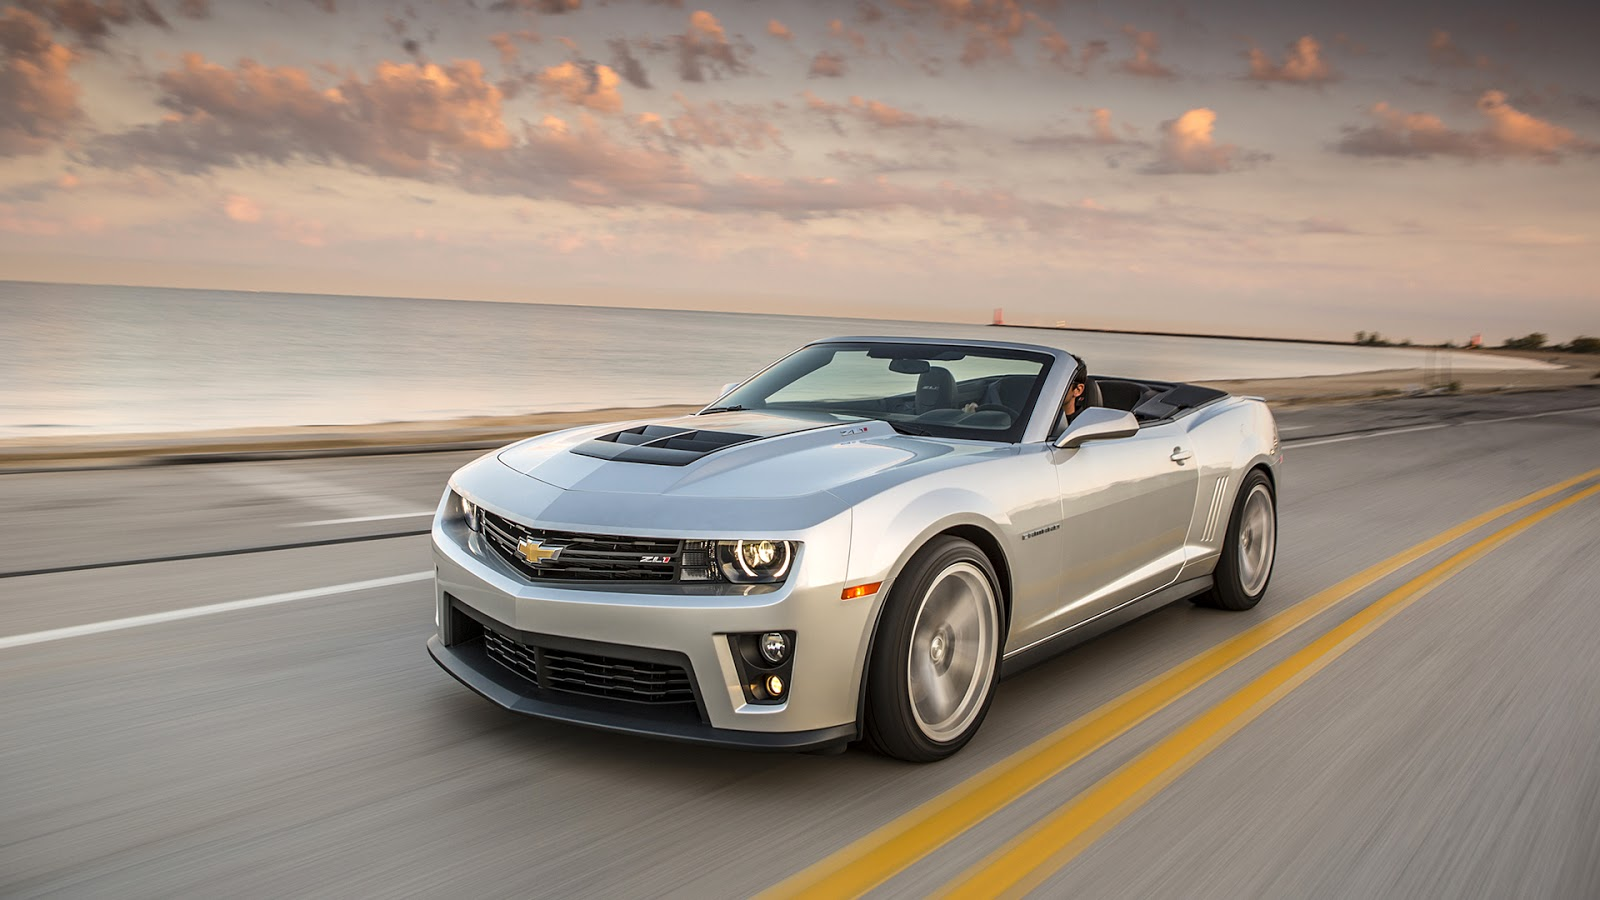 Chevrolet Camaro ZL1 in Triple White Wallpapers Wallpaper 3979 1600x900